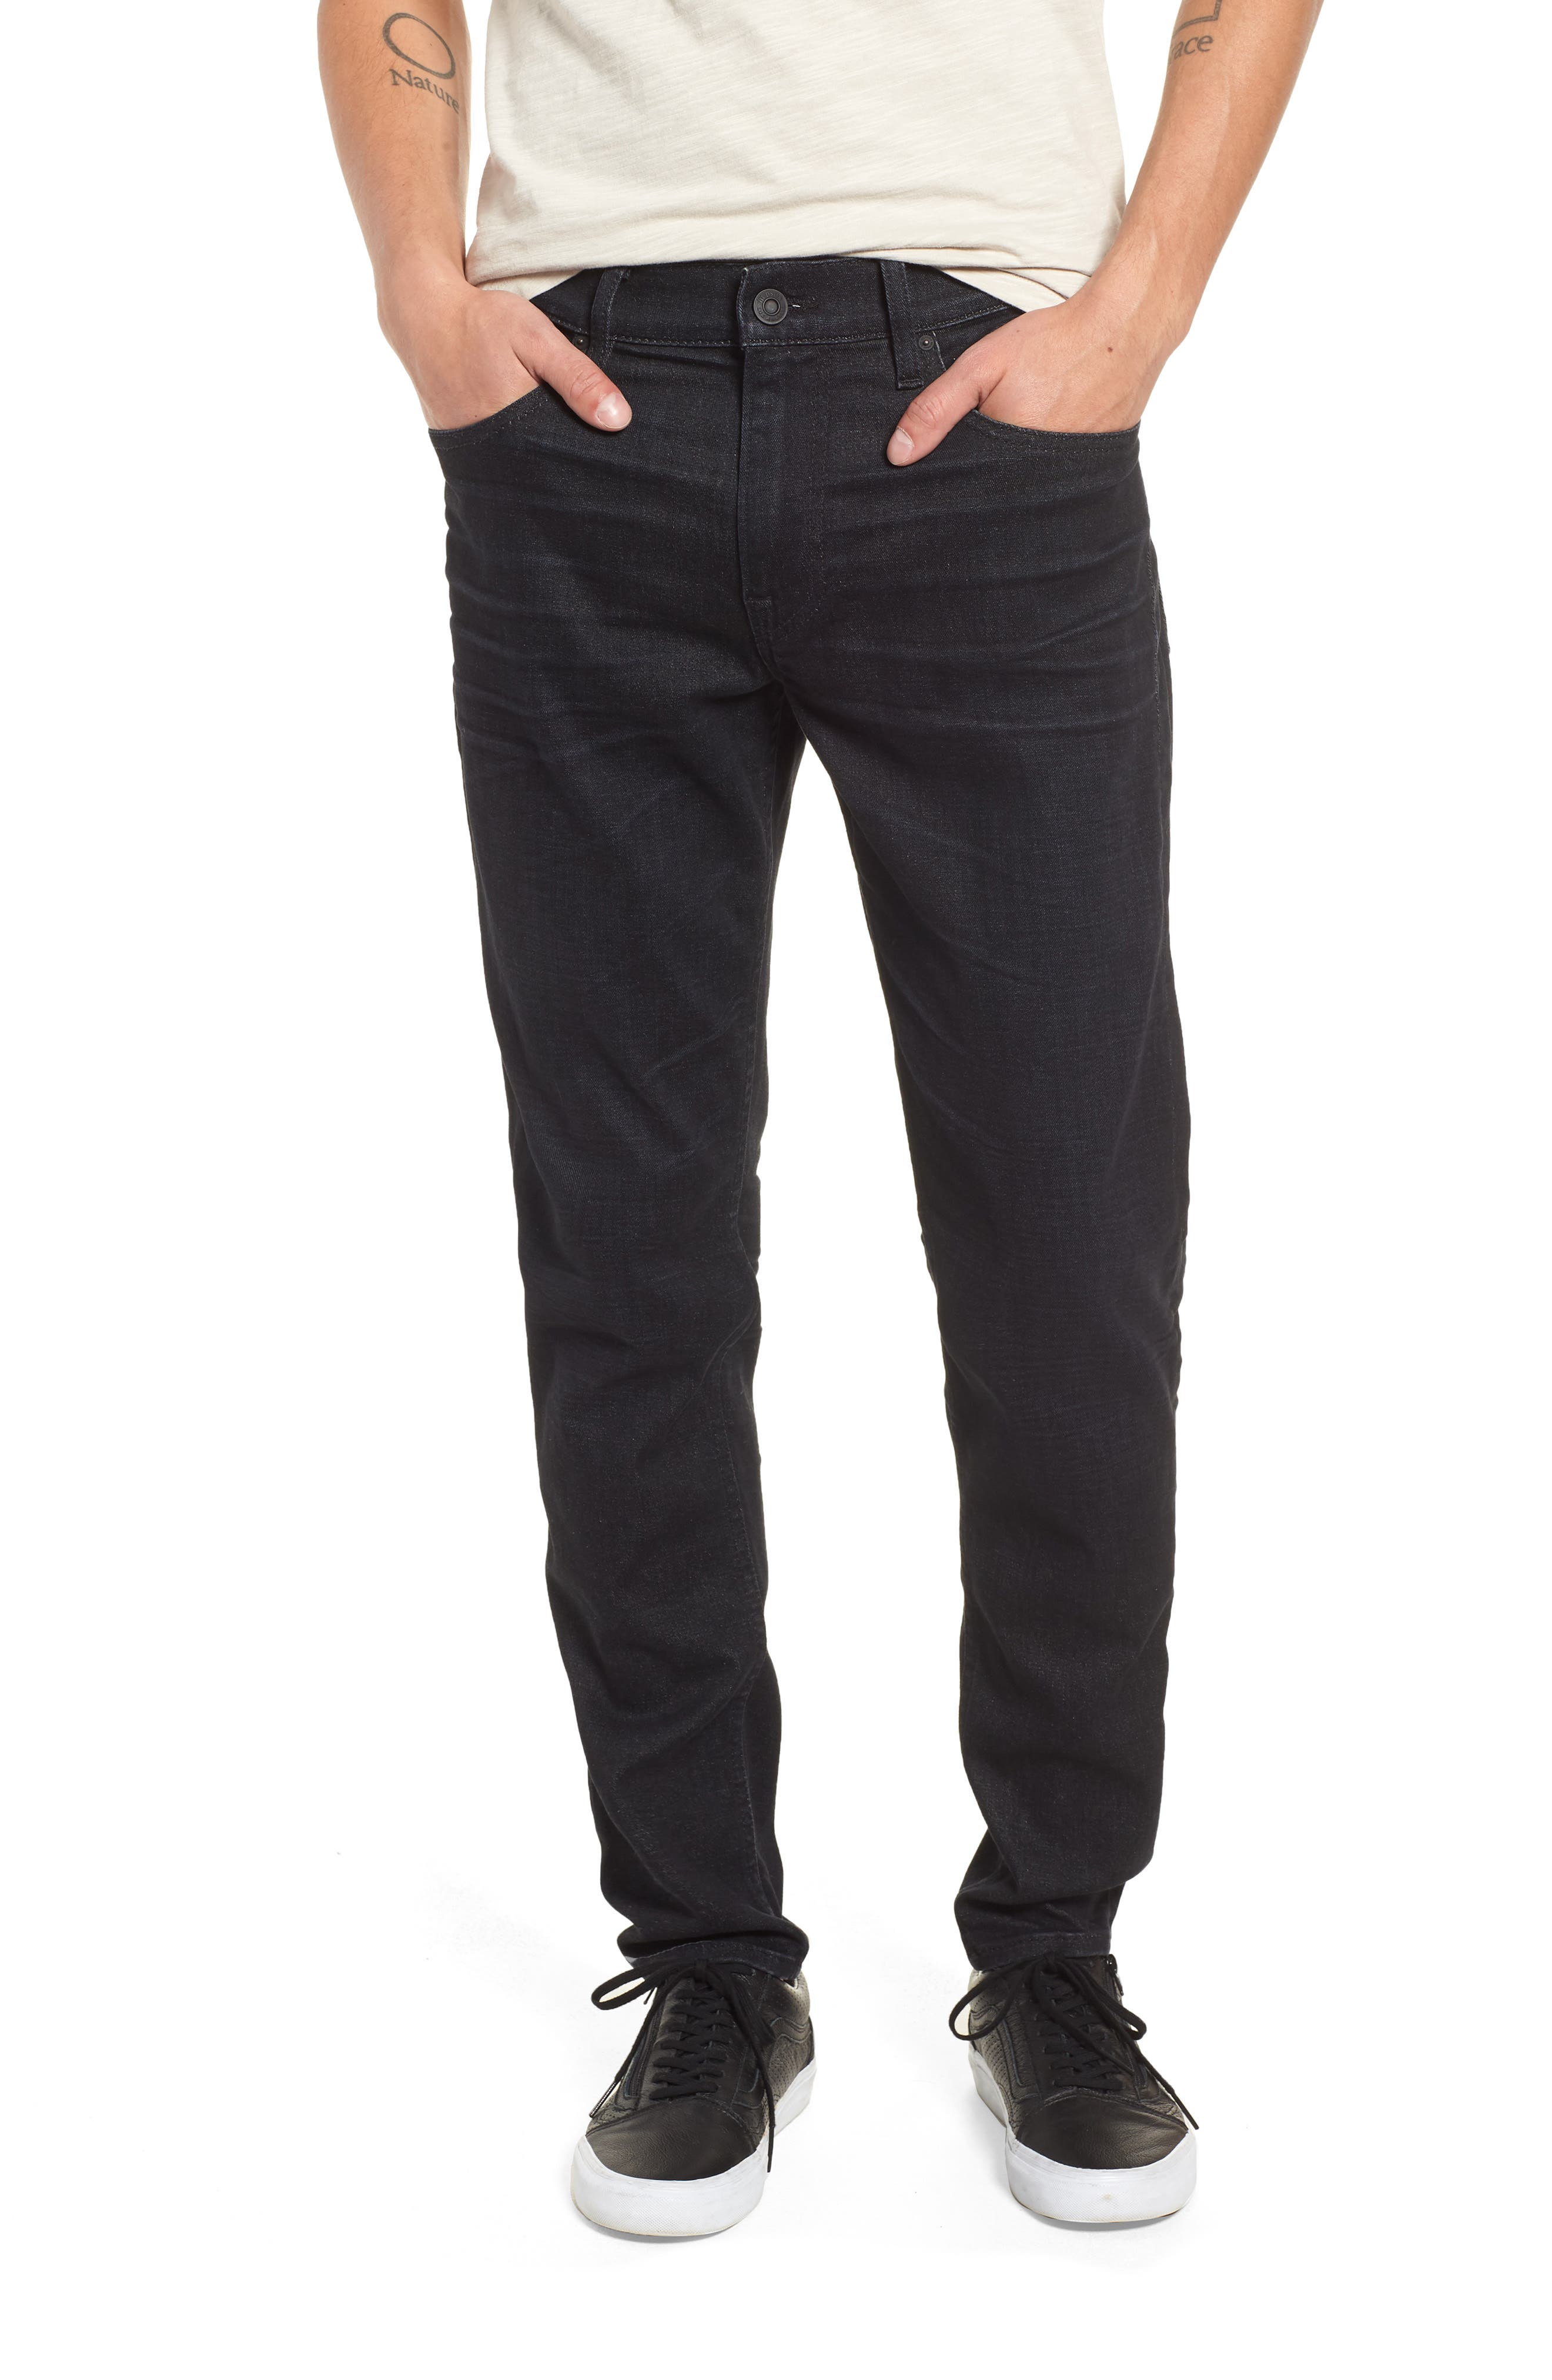 Zack Skinny Fit Jeans,                             Main thumbnail 1, color,                             001